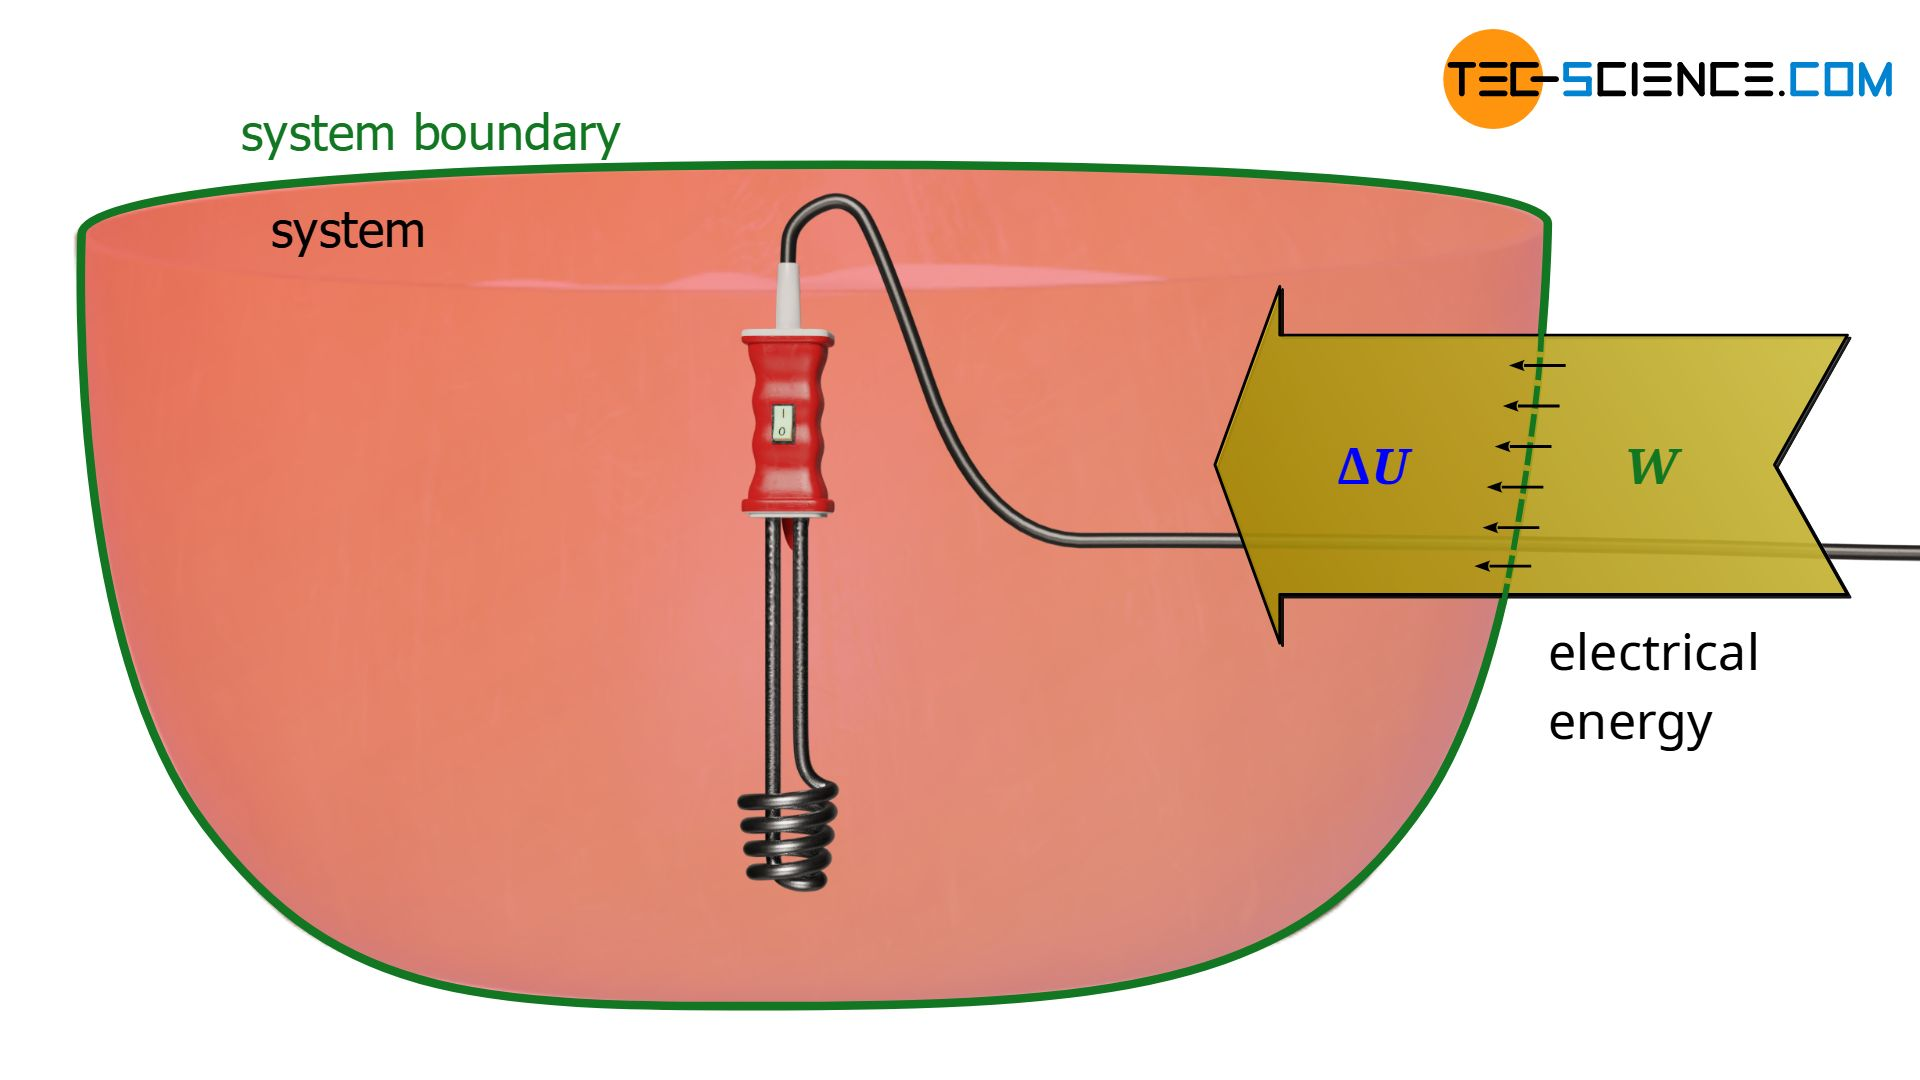 Dissipation of electrical energy with an immersion heater